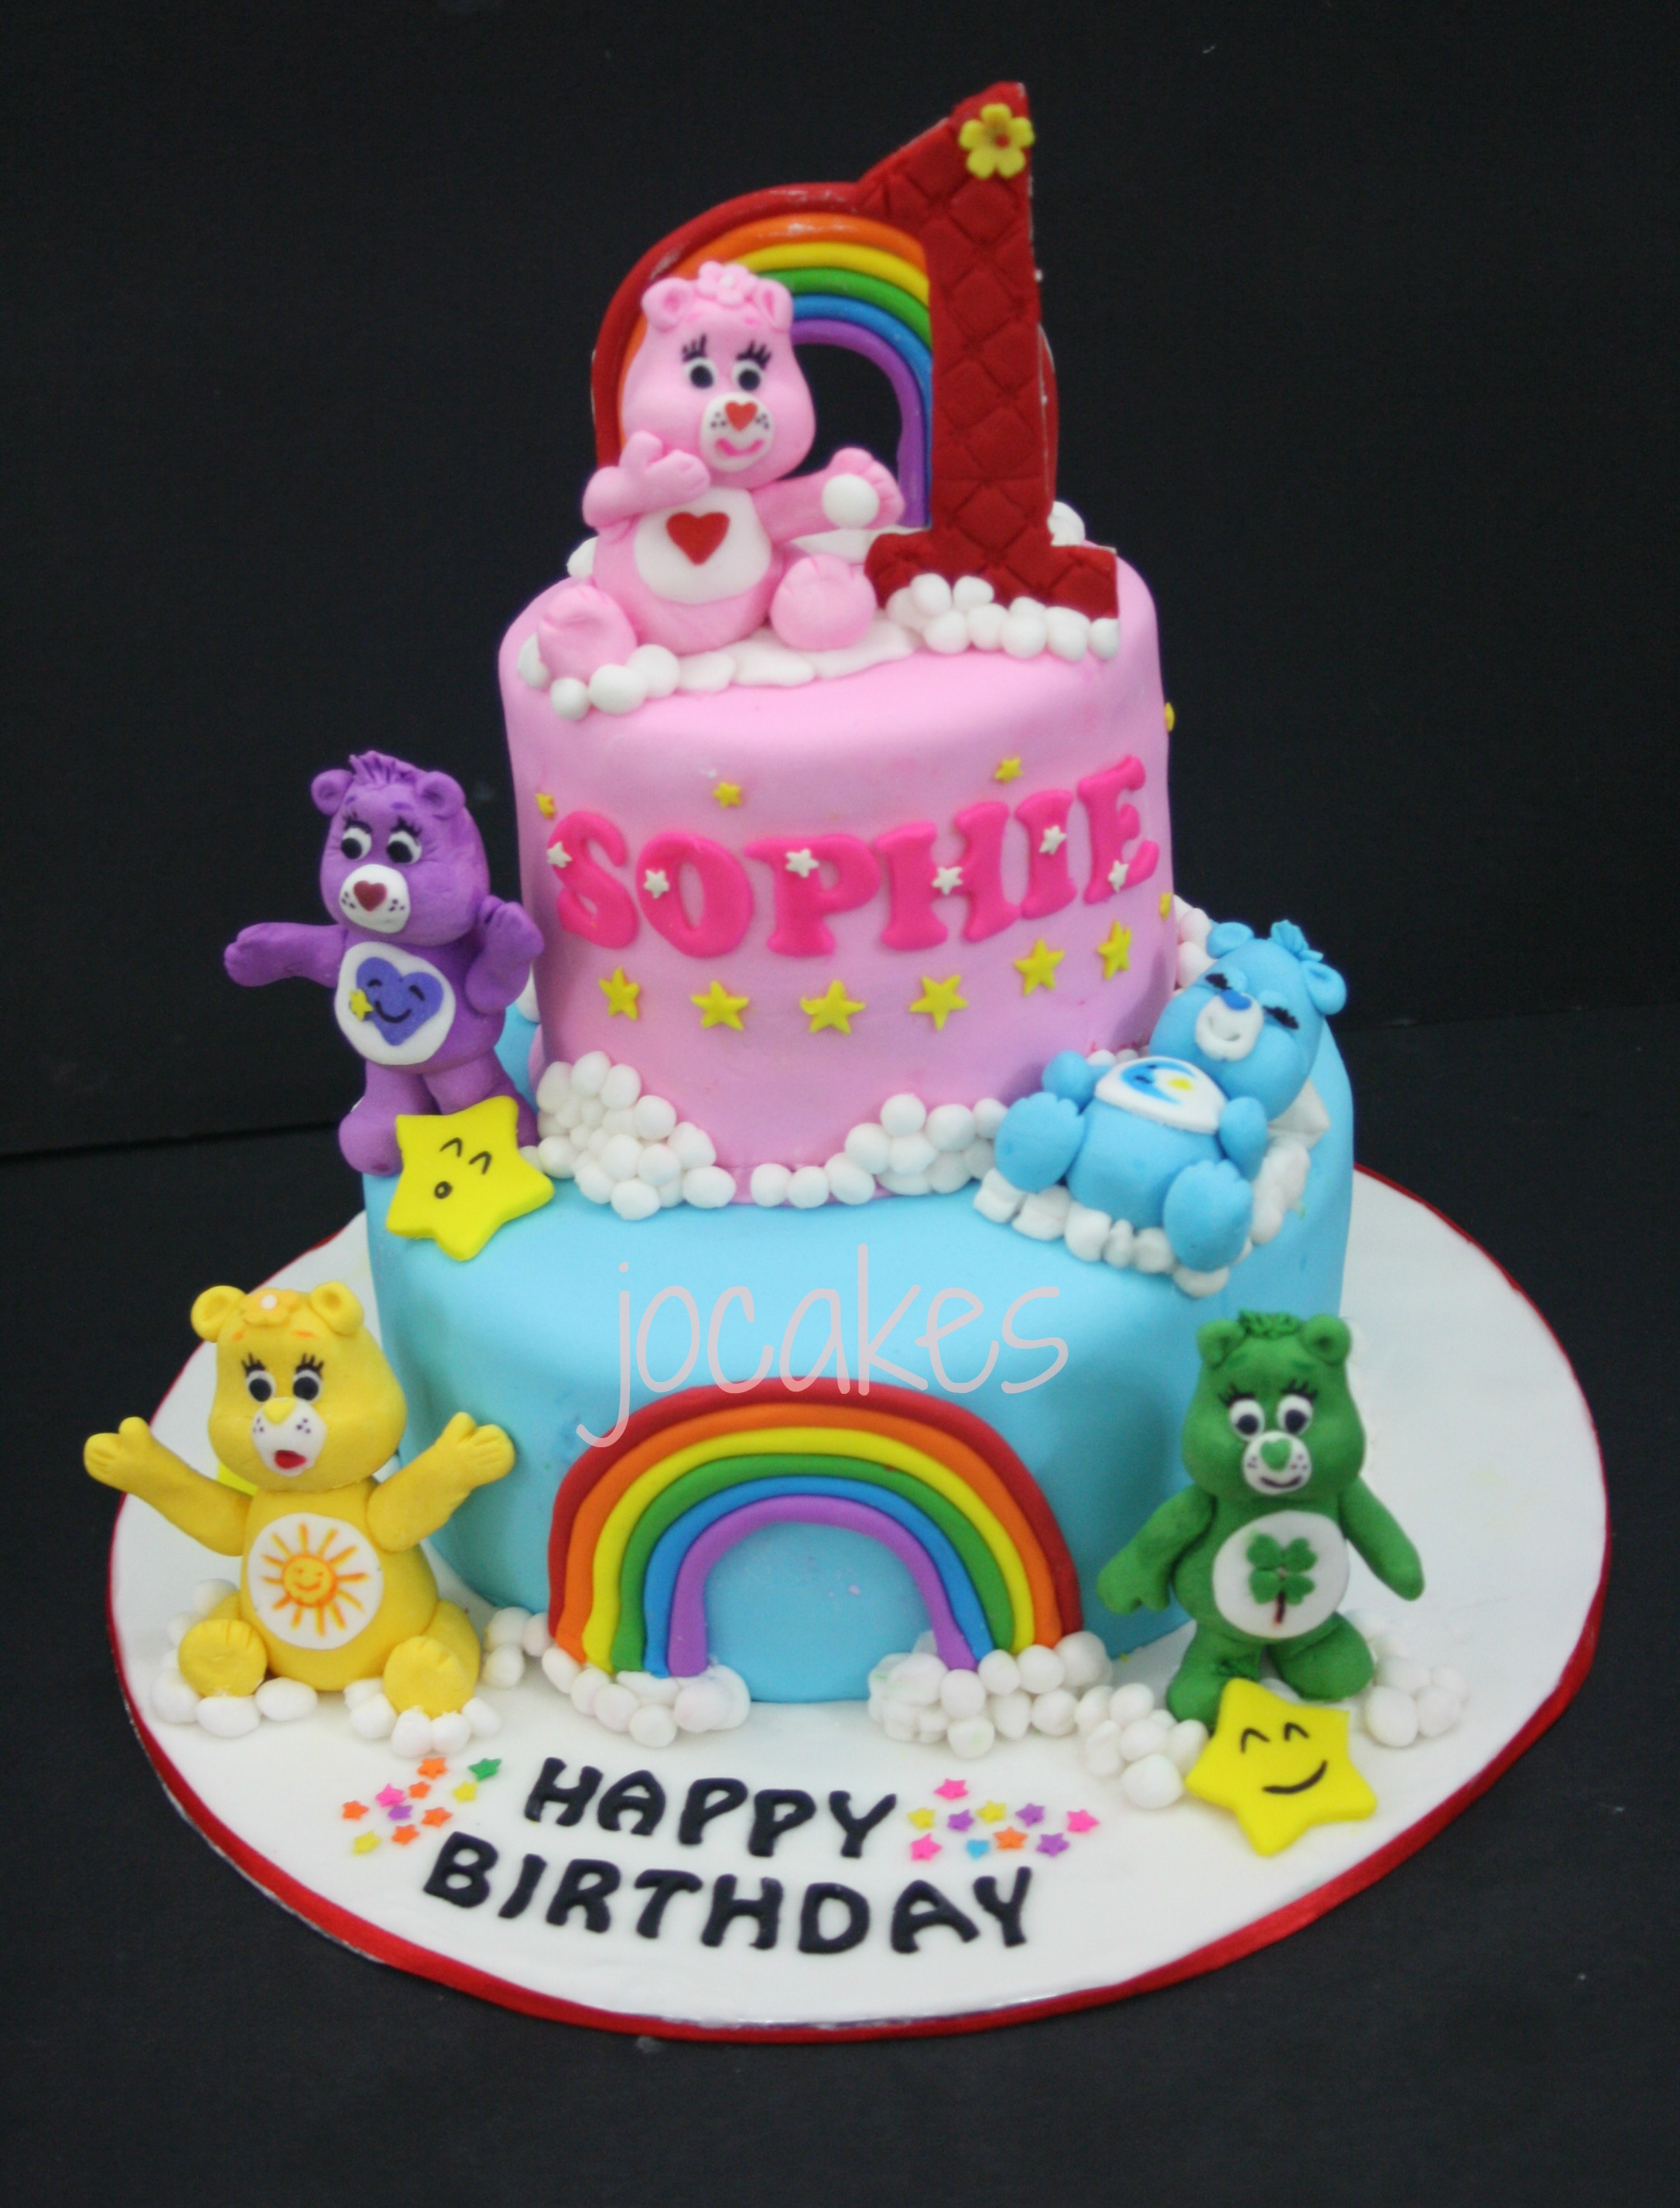 11 Care Bear Birthday One Year Old Cakes For Girls Photo 1 Year